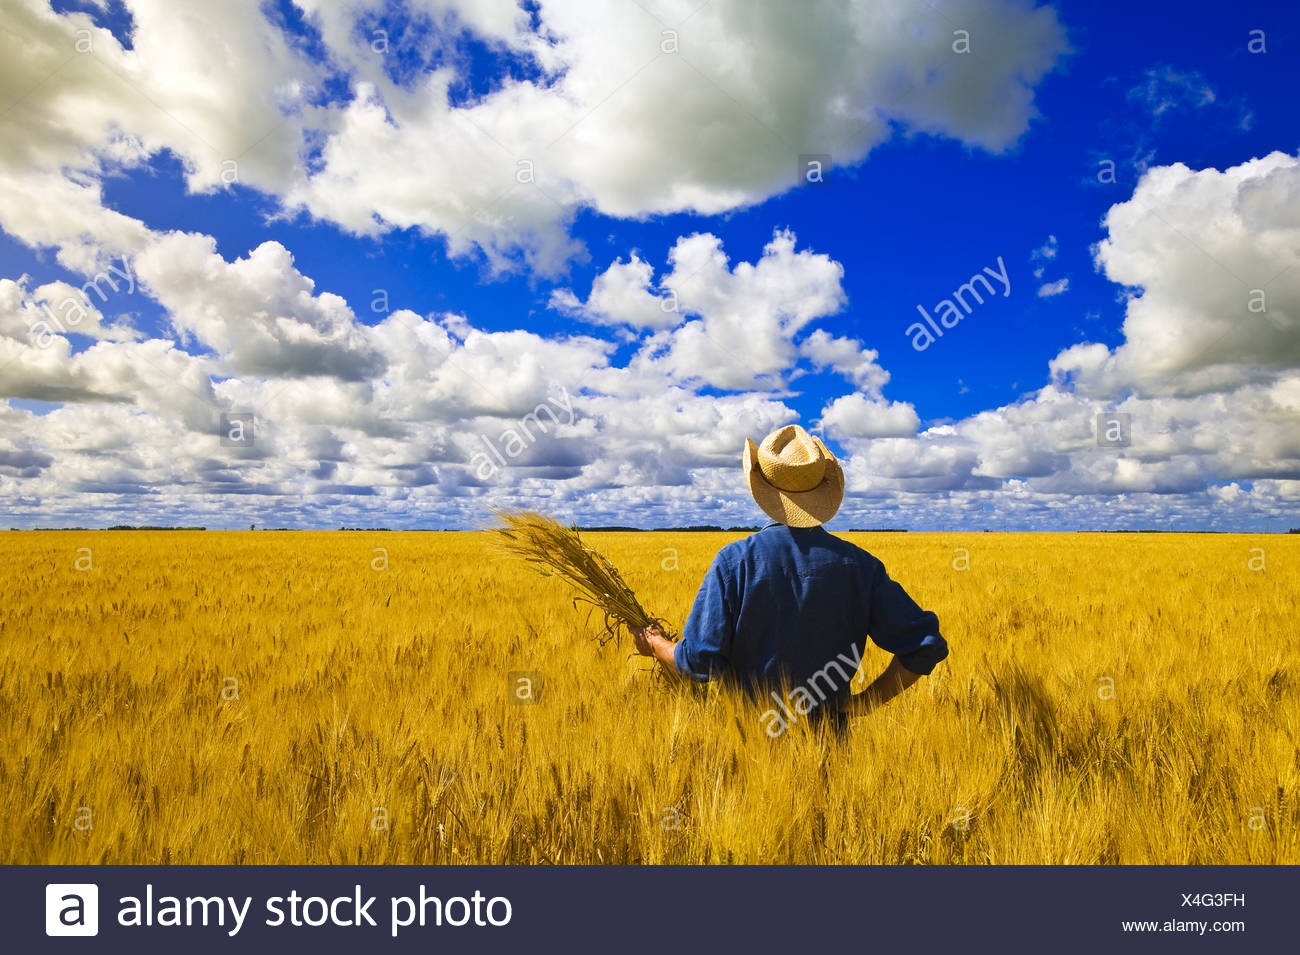 a man looks out over a field of maturing spring wheat with cumulus clouds in the background, near Dugald, Manitoba, Canada - Stock Image